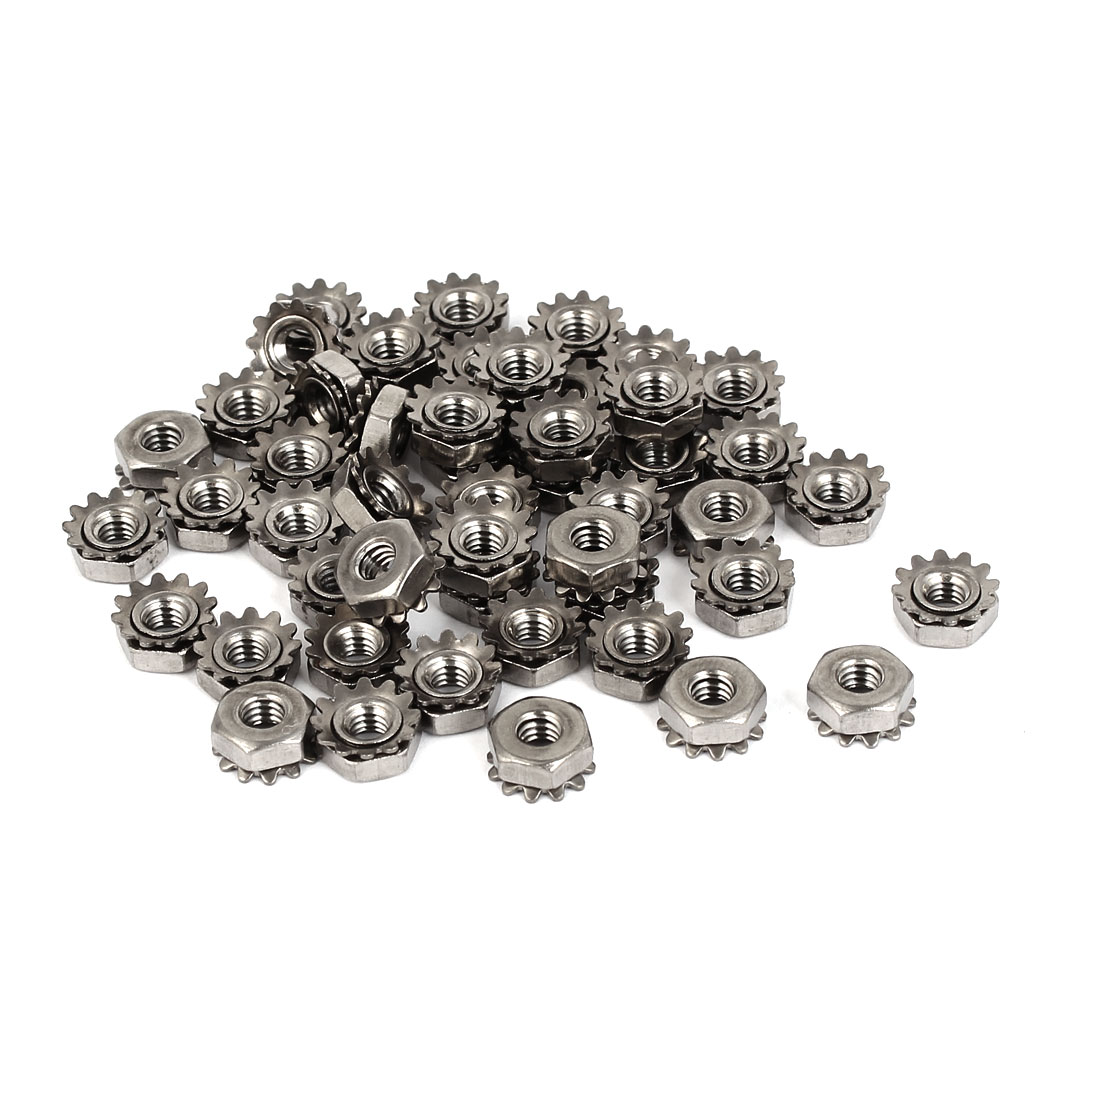 8#-32 304 Stainless Steel Female Thread Kep Hex Head Lock Nut 50pcs